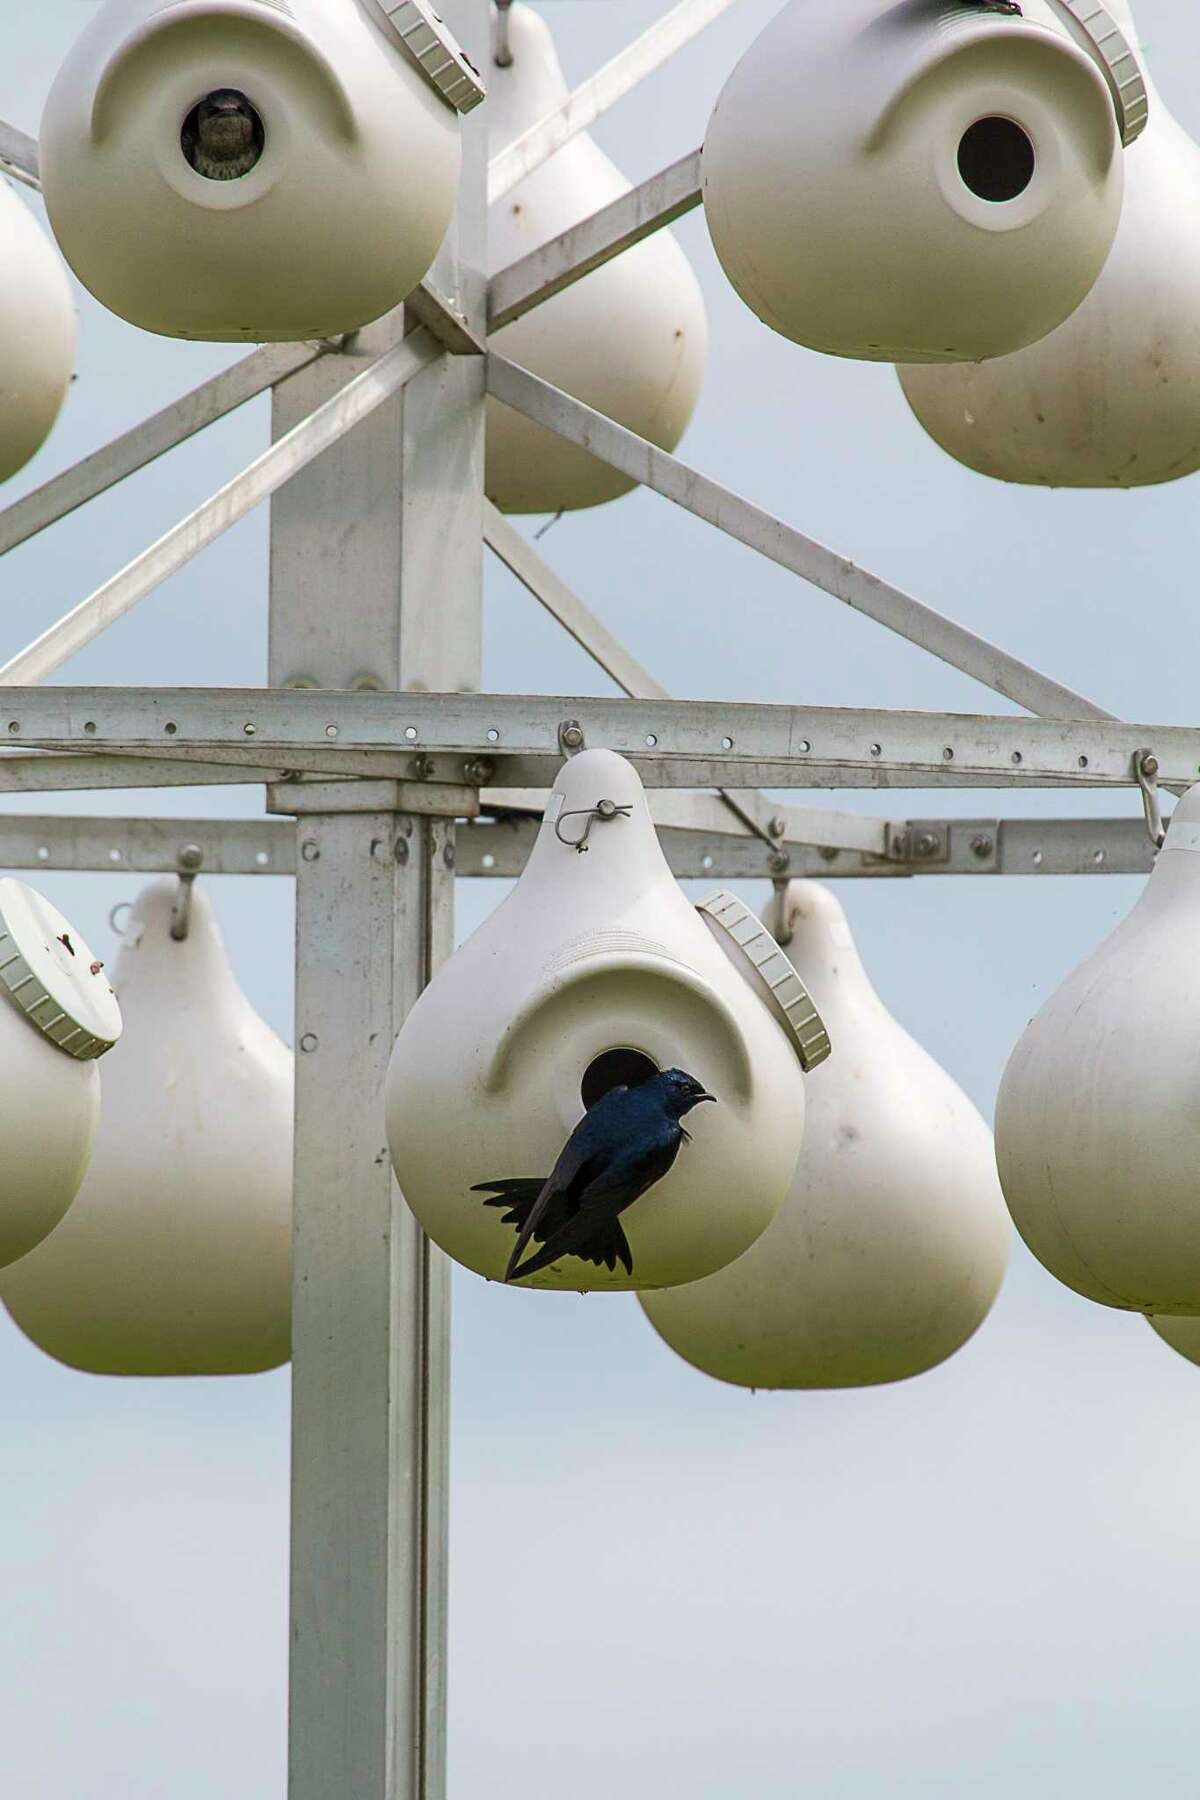 It is hard for many of us to fathom given the past week's severe winter weather, but purple martins are back in San Antonio.